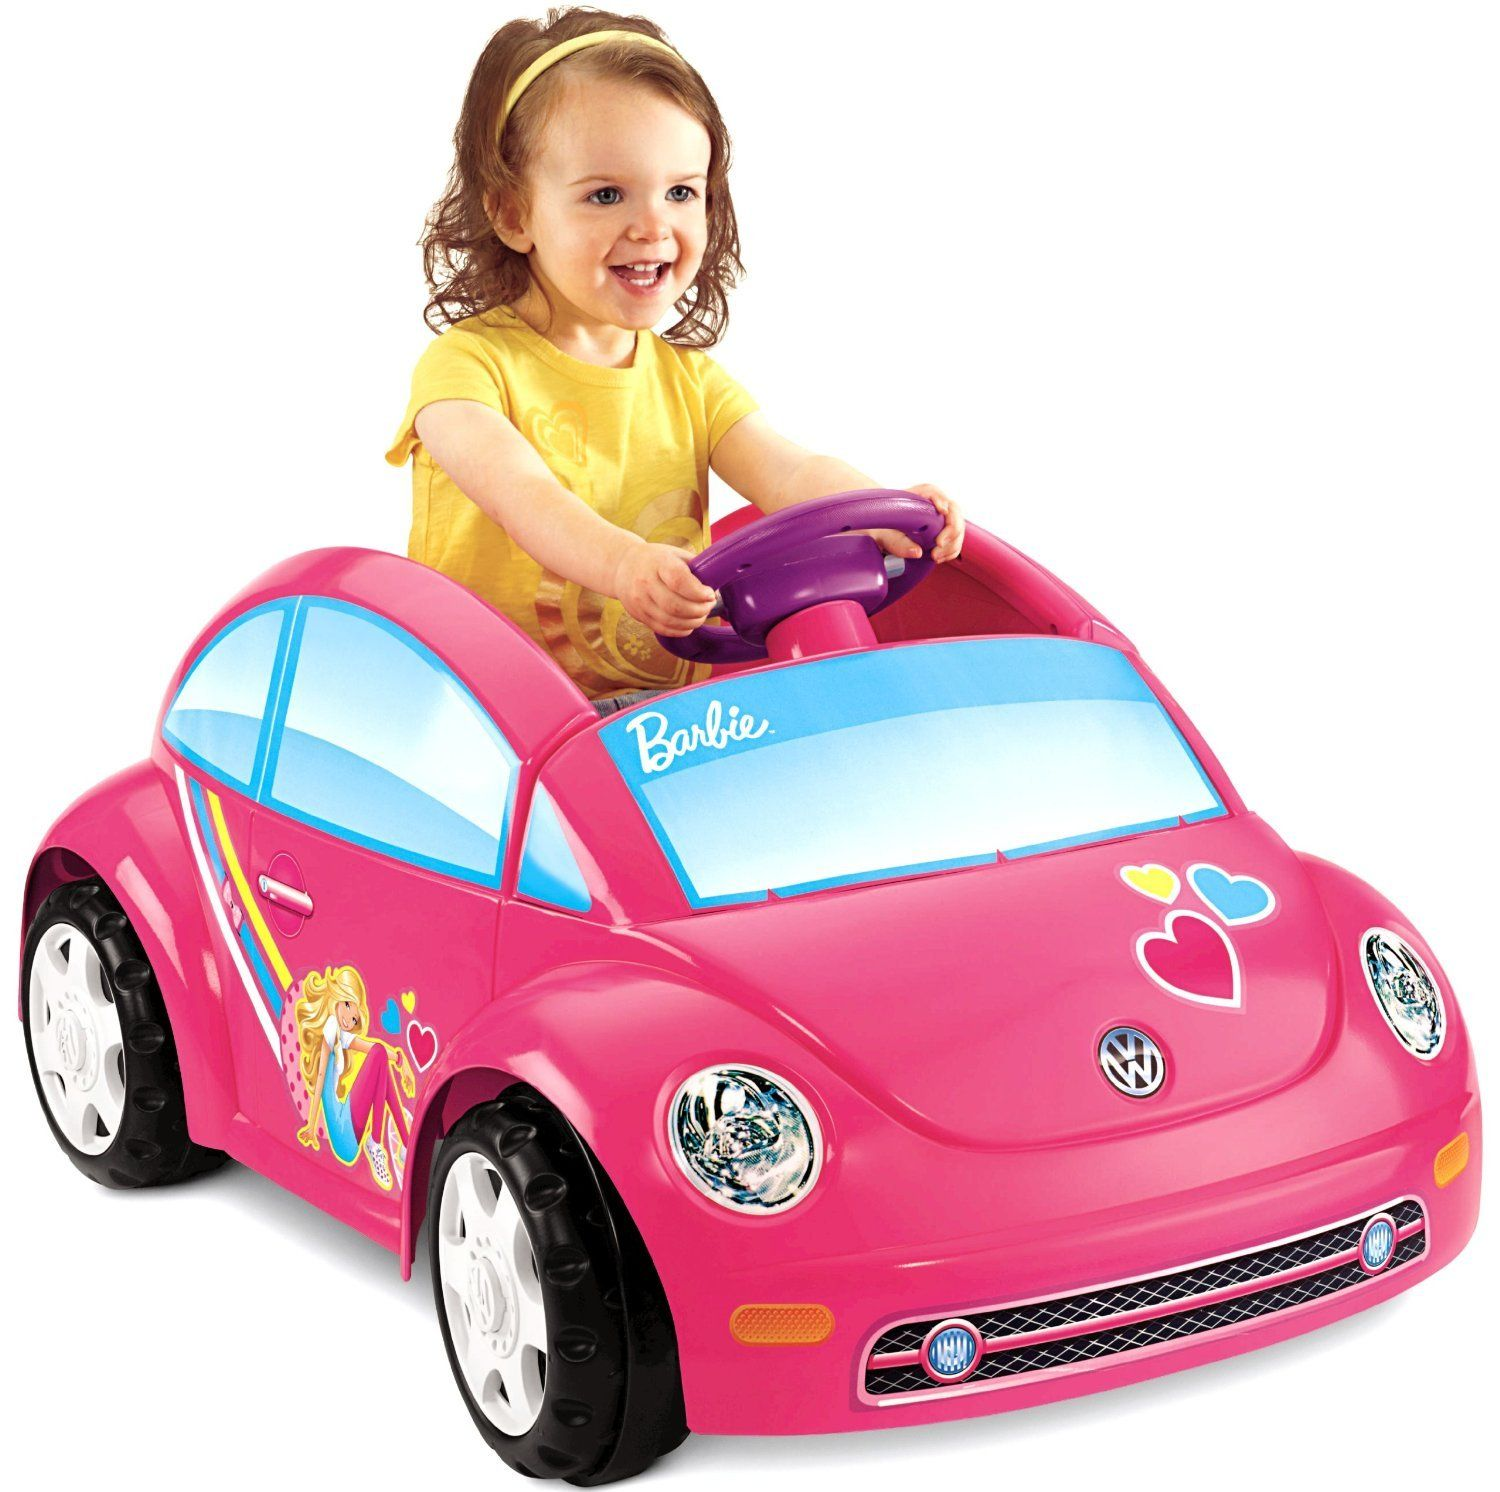 girls car powerwheels barbie pink ride along mini car for toddlers